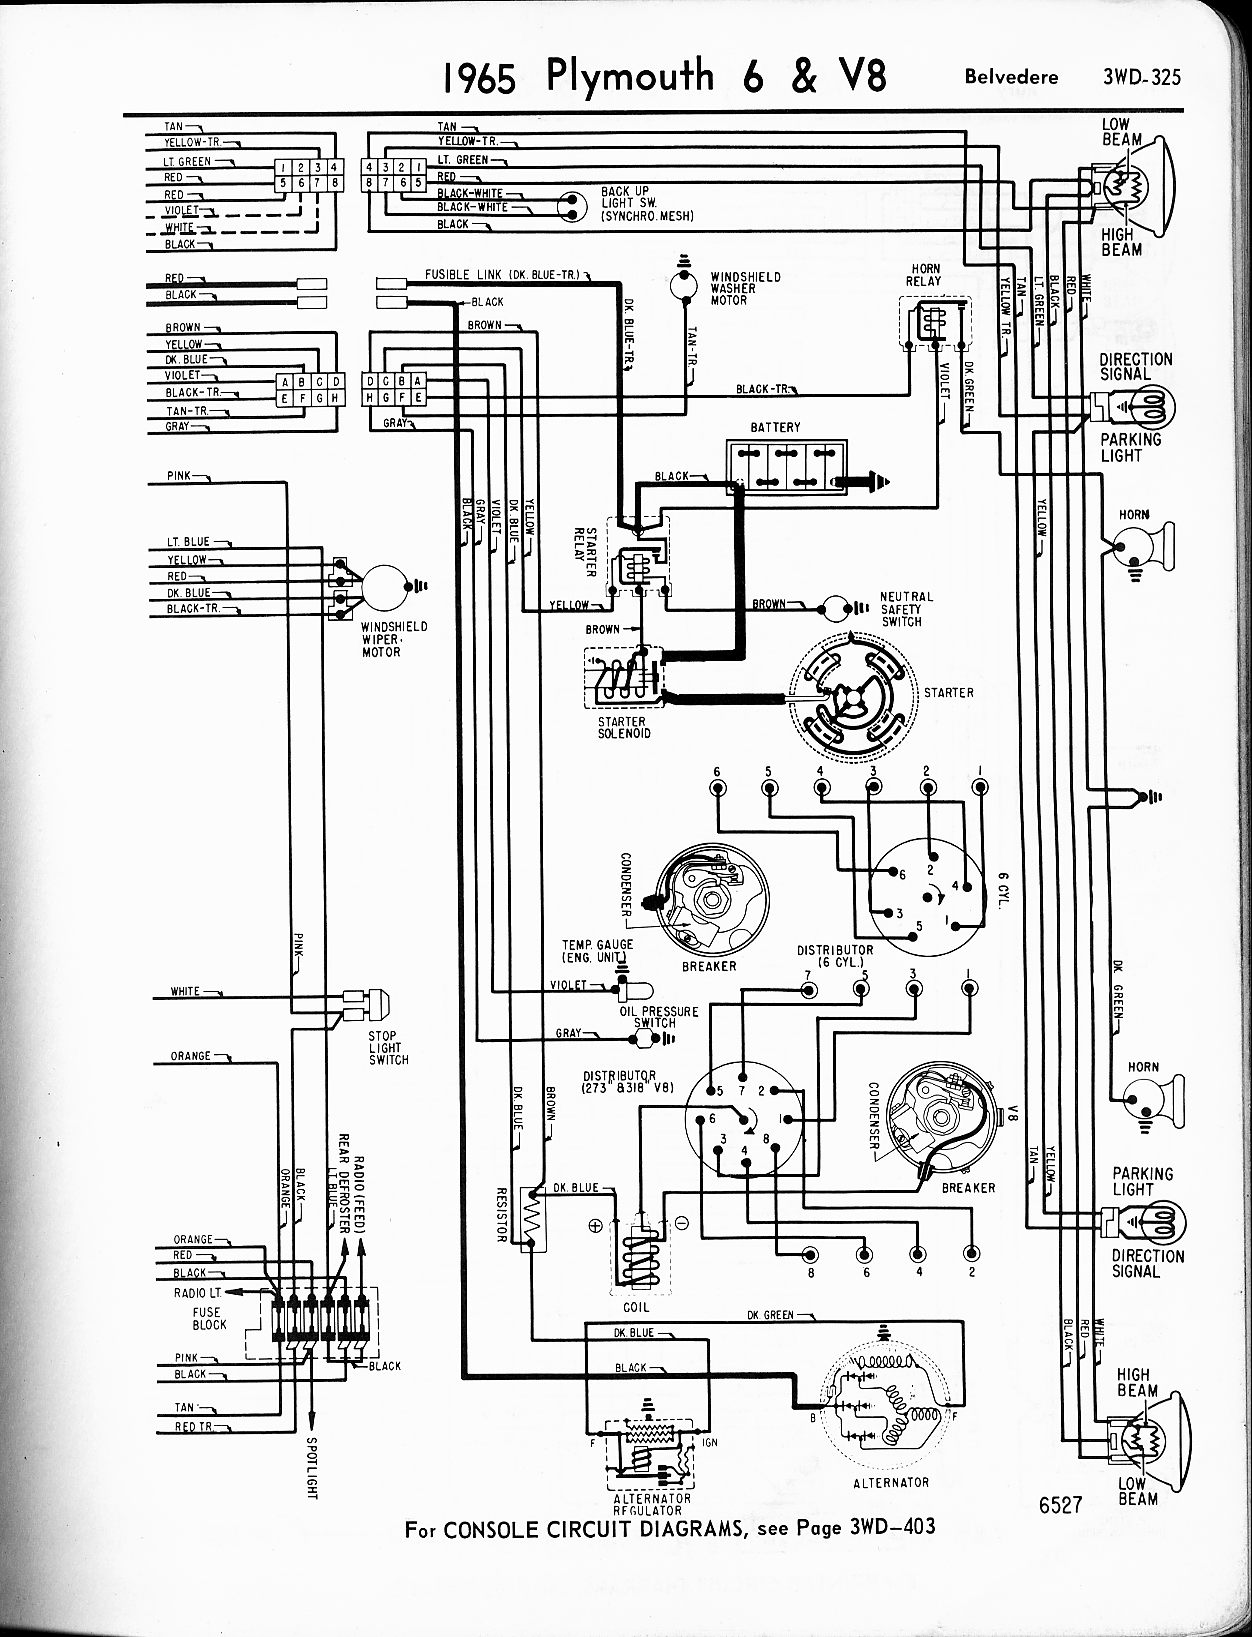 73 Duster Wiring Diagram Simple Guide About Logitech Webcam C300 What Is The Wireing Schematic For Wiper Switch And